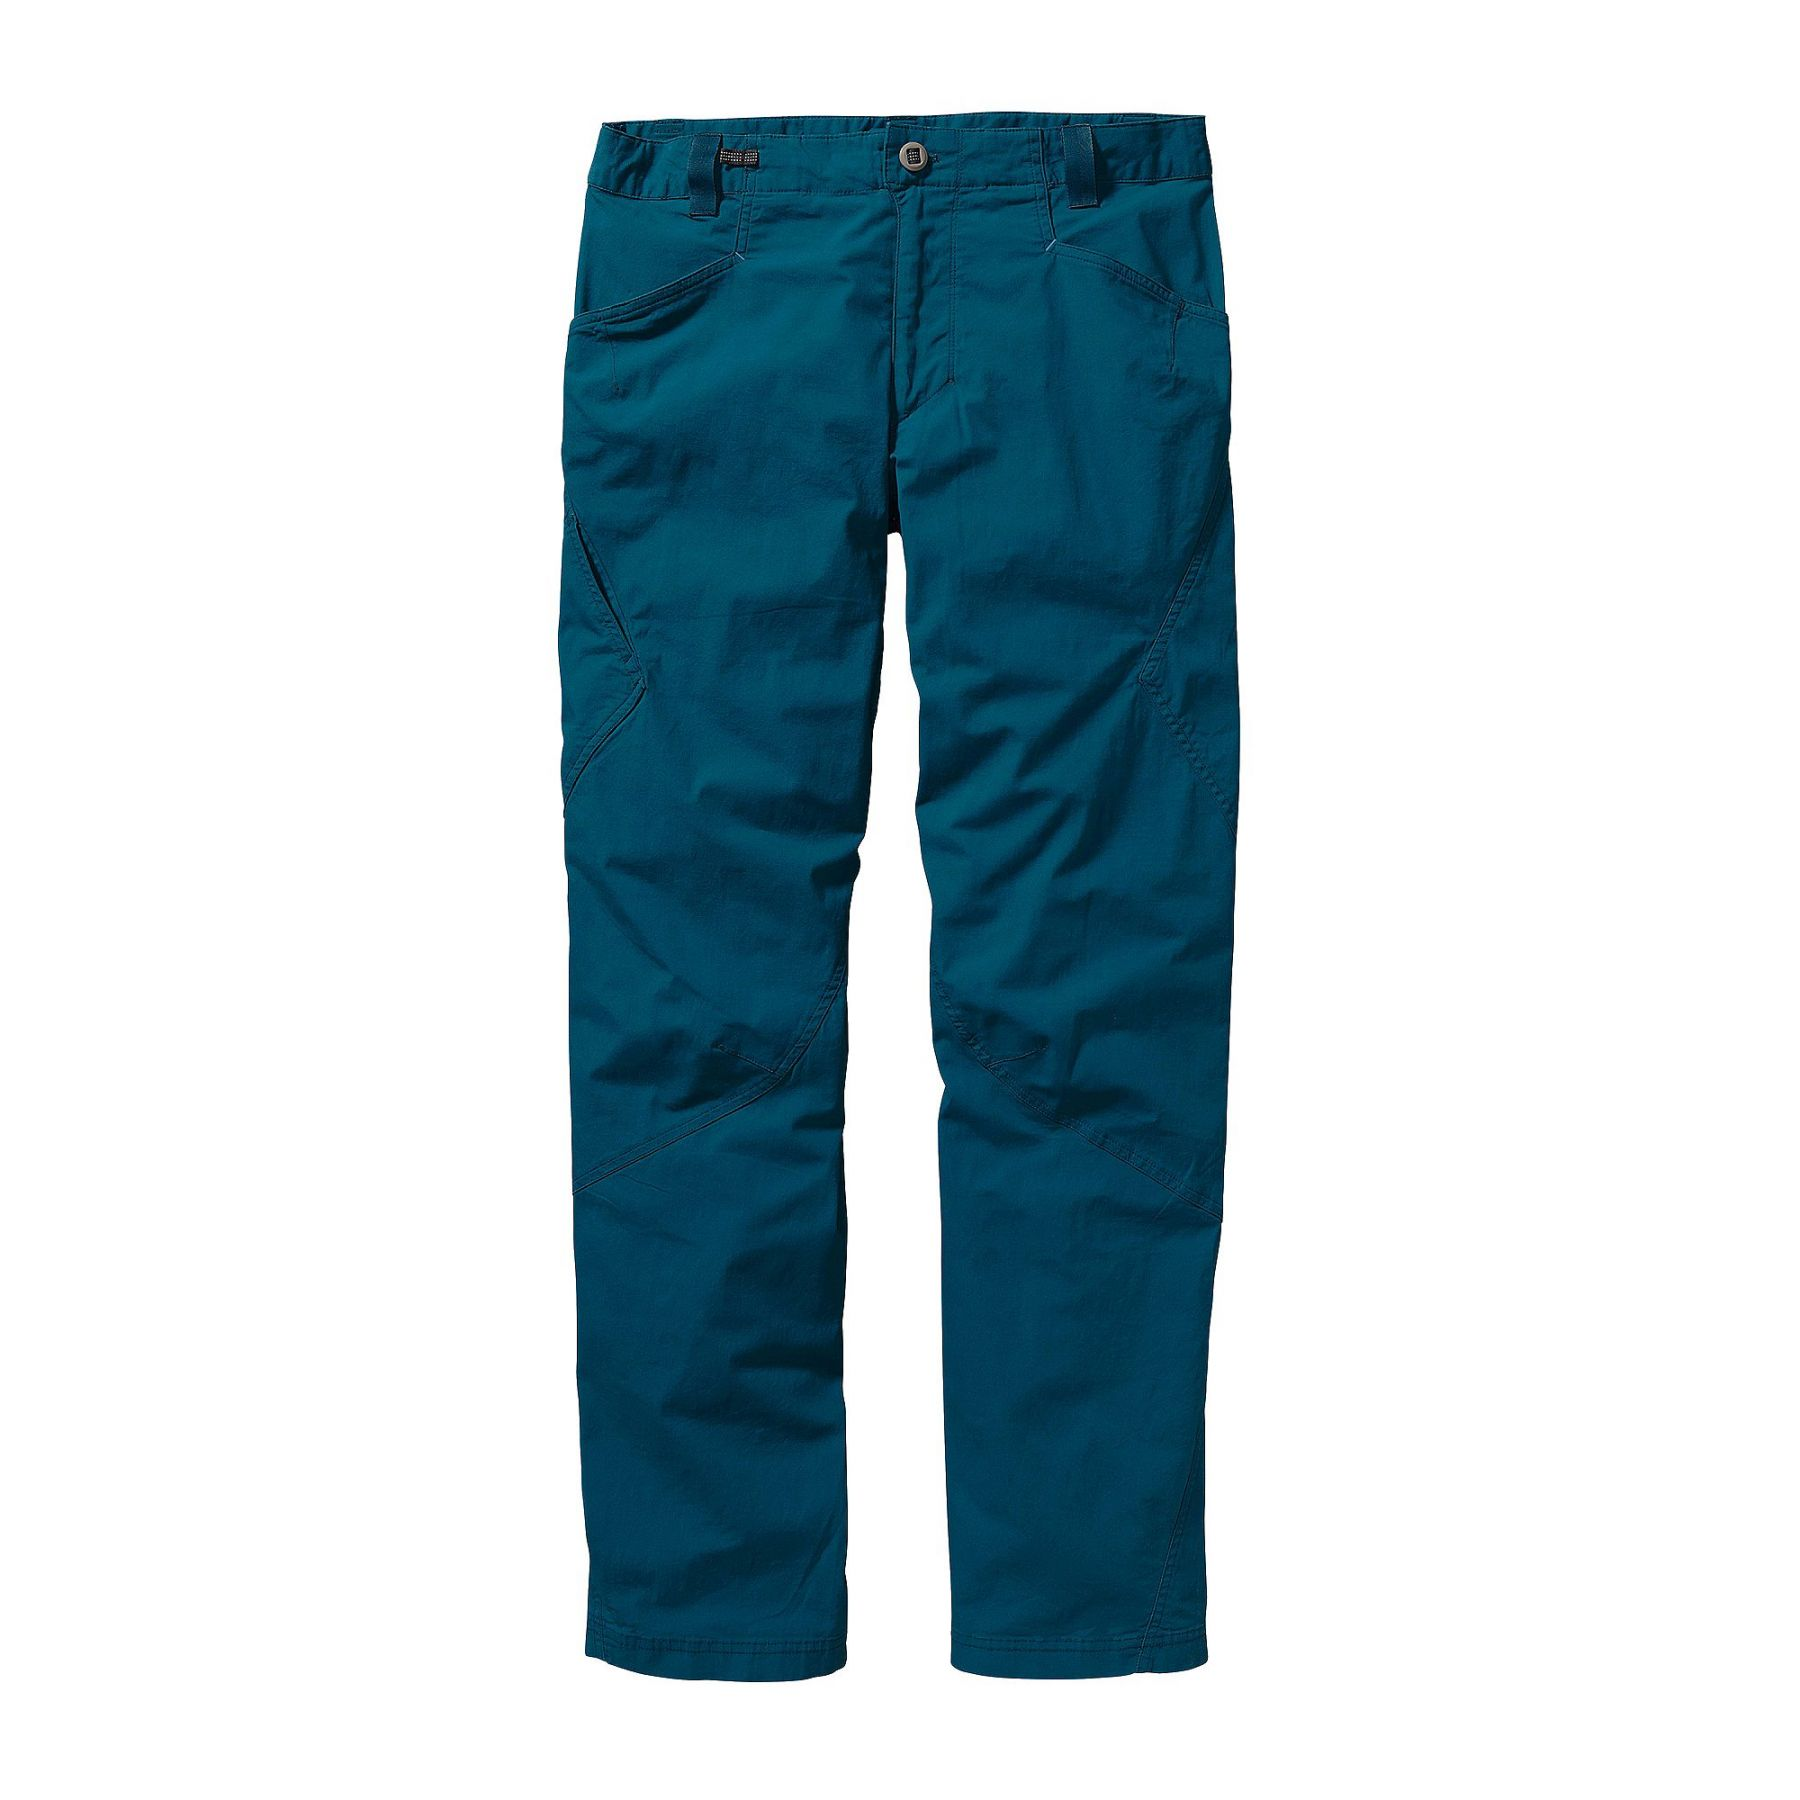 Брюки Patagonia Venga Rock Pants